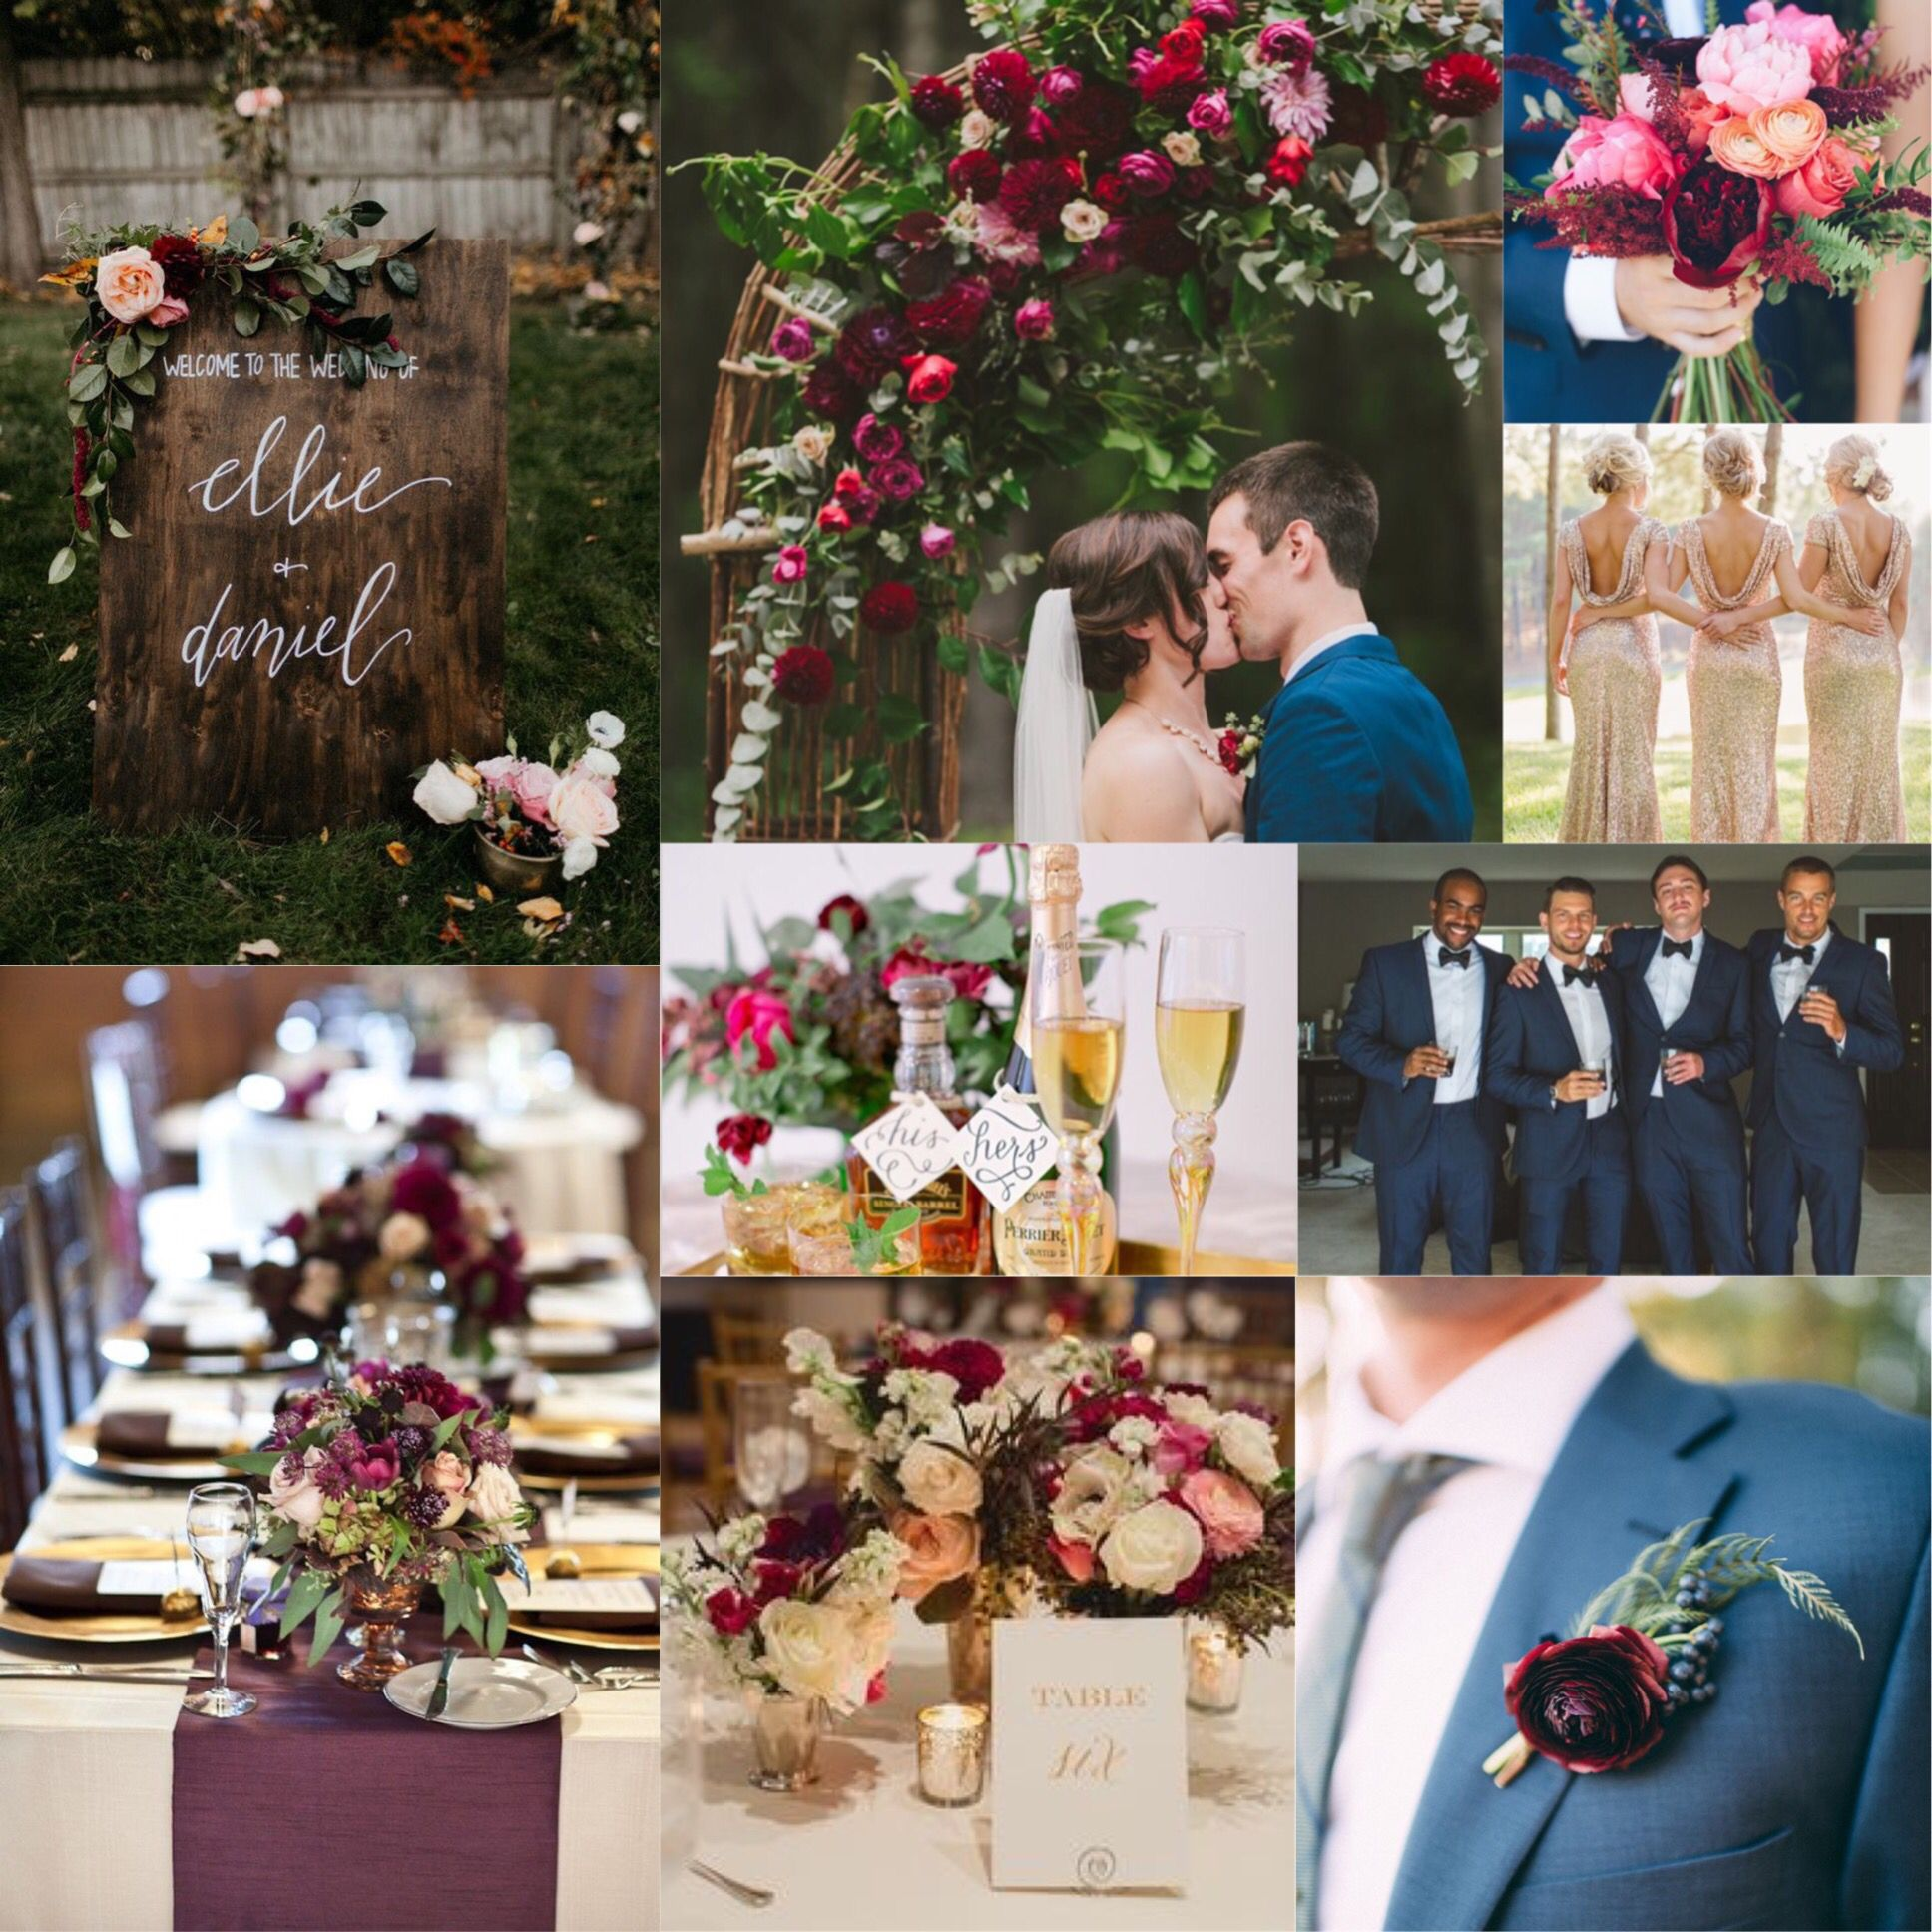 Pink and maroon wedding decor  Burgundy Plum Champagne and Navy Wedding Lots of greenery  OUR